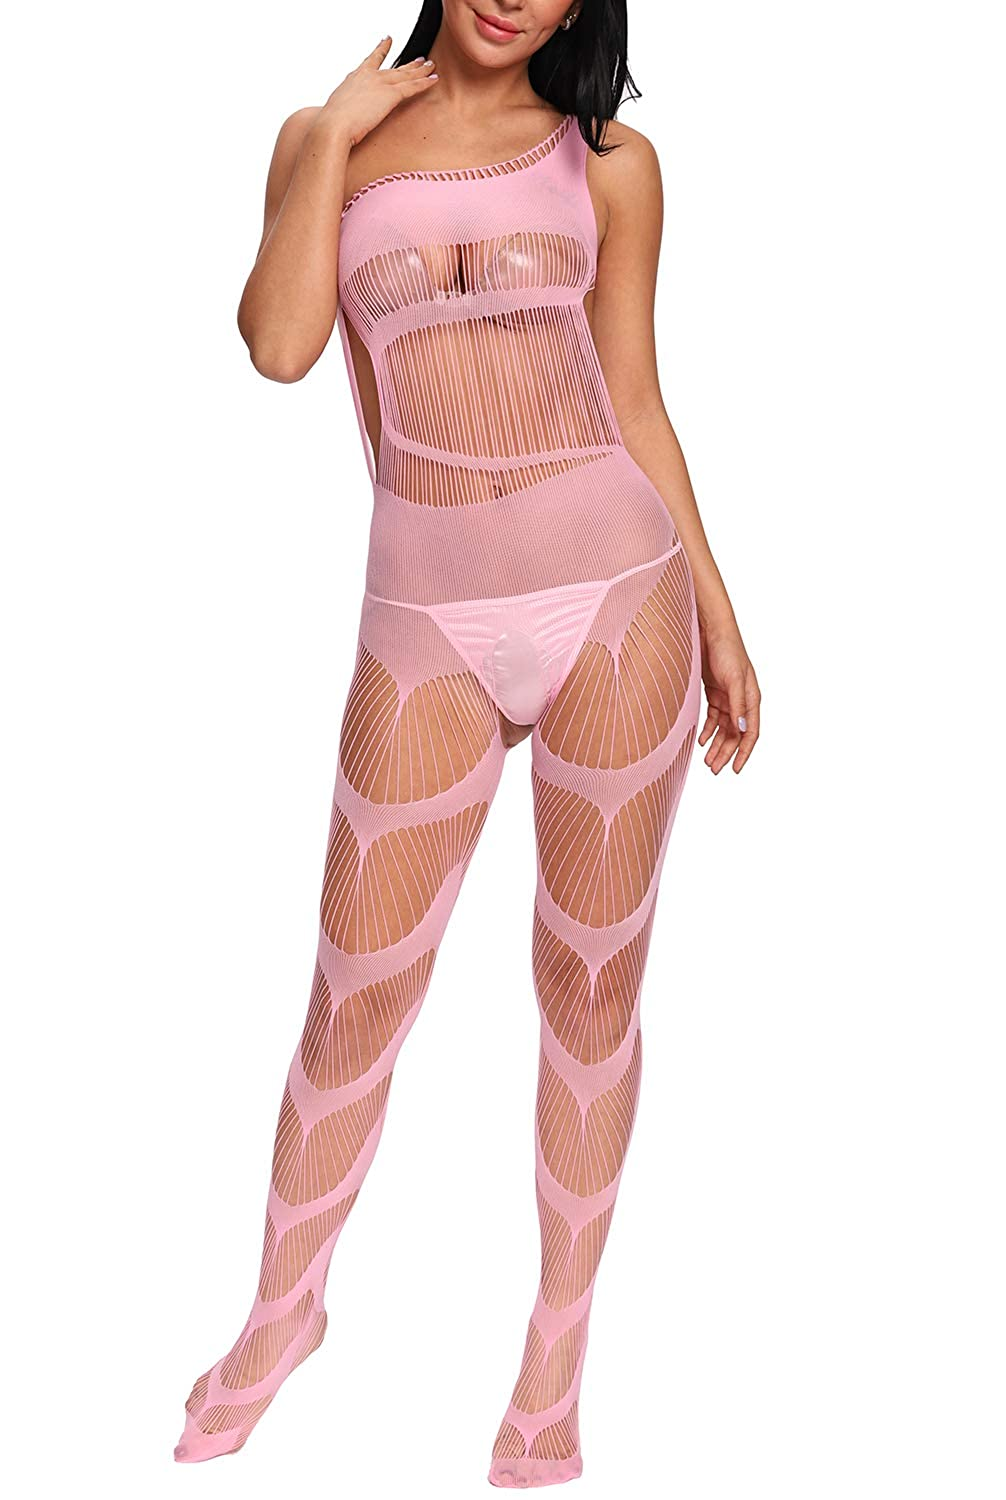 a596cad3b1 Amazon.com  Vextronic Women s Crotchless Fishnet Bodystocking Plus Size Mesh  Bodysuit Lingerie(G-String) (Pink)  Clothing